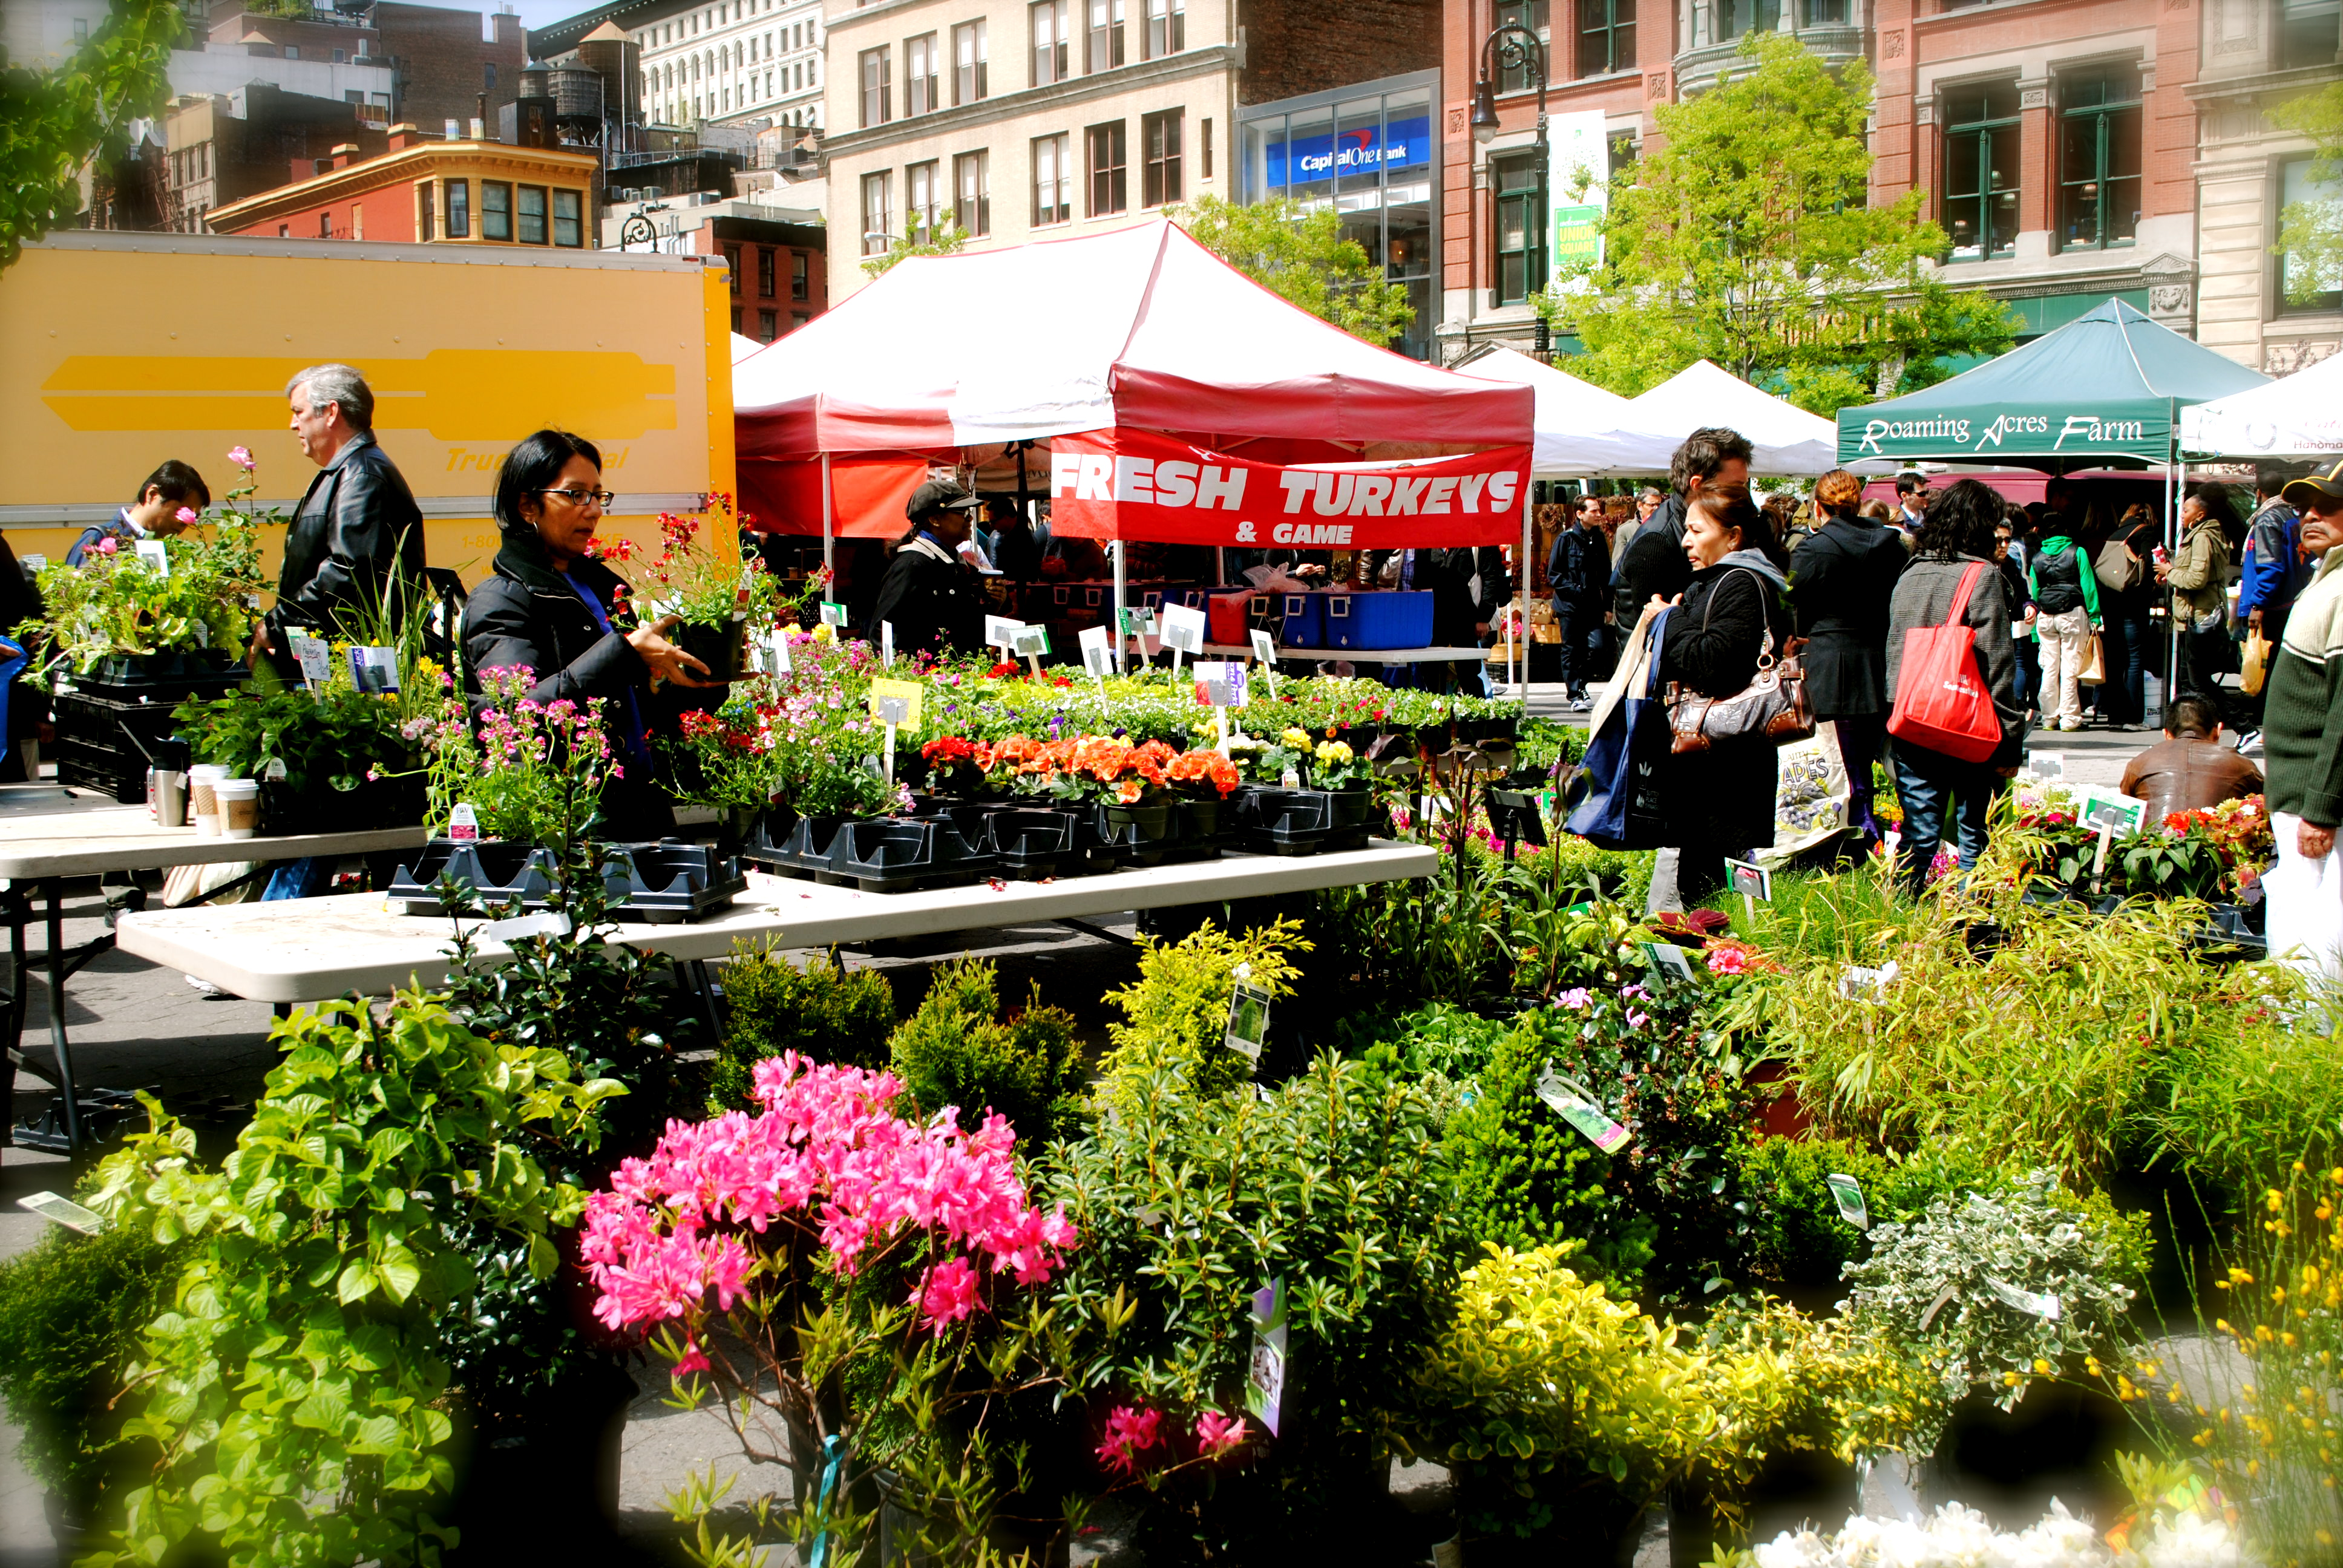 A day in the union square greenmarket thesetrendingtopics for Flowers union square nyc